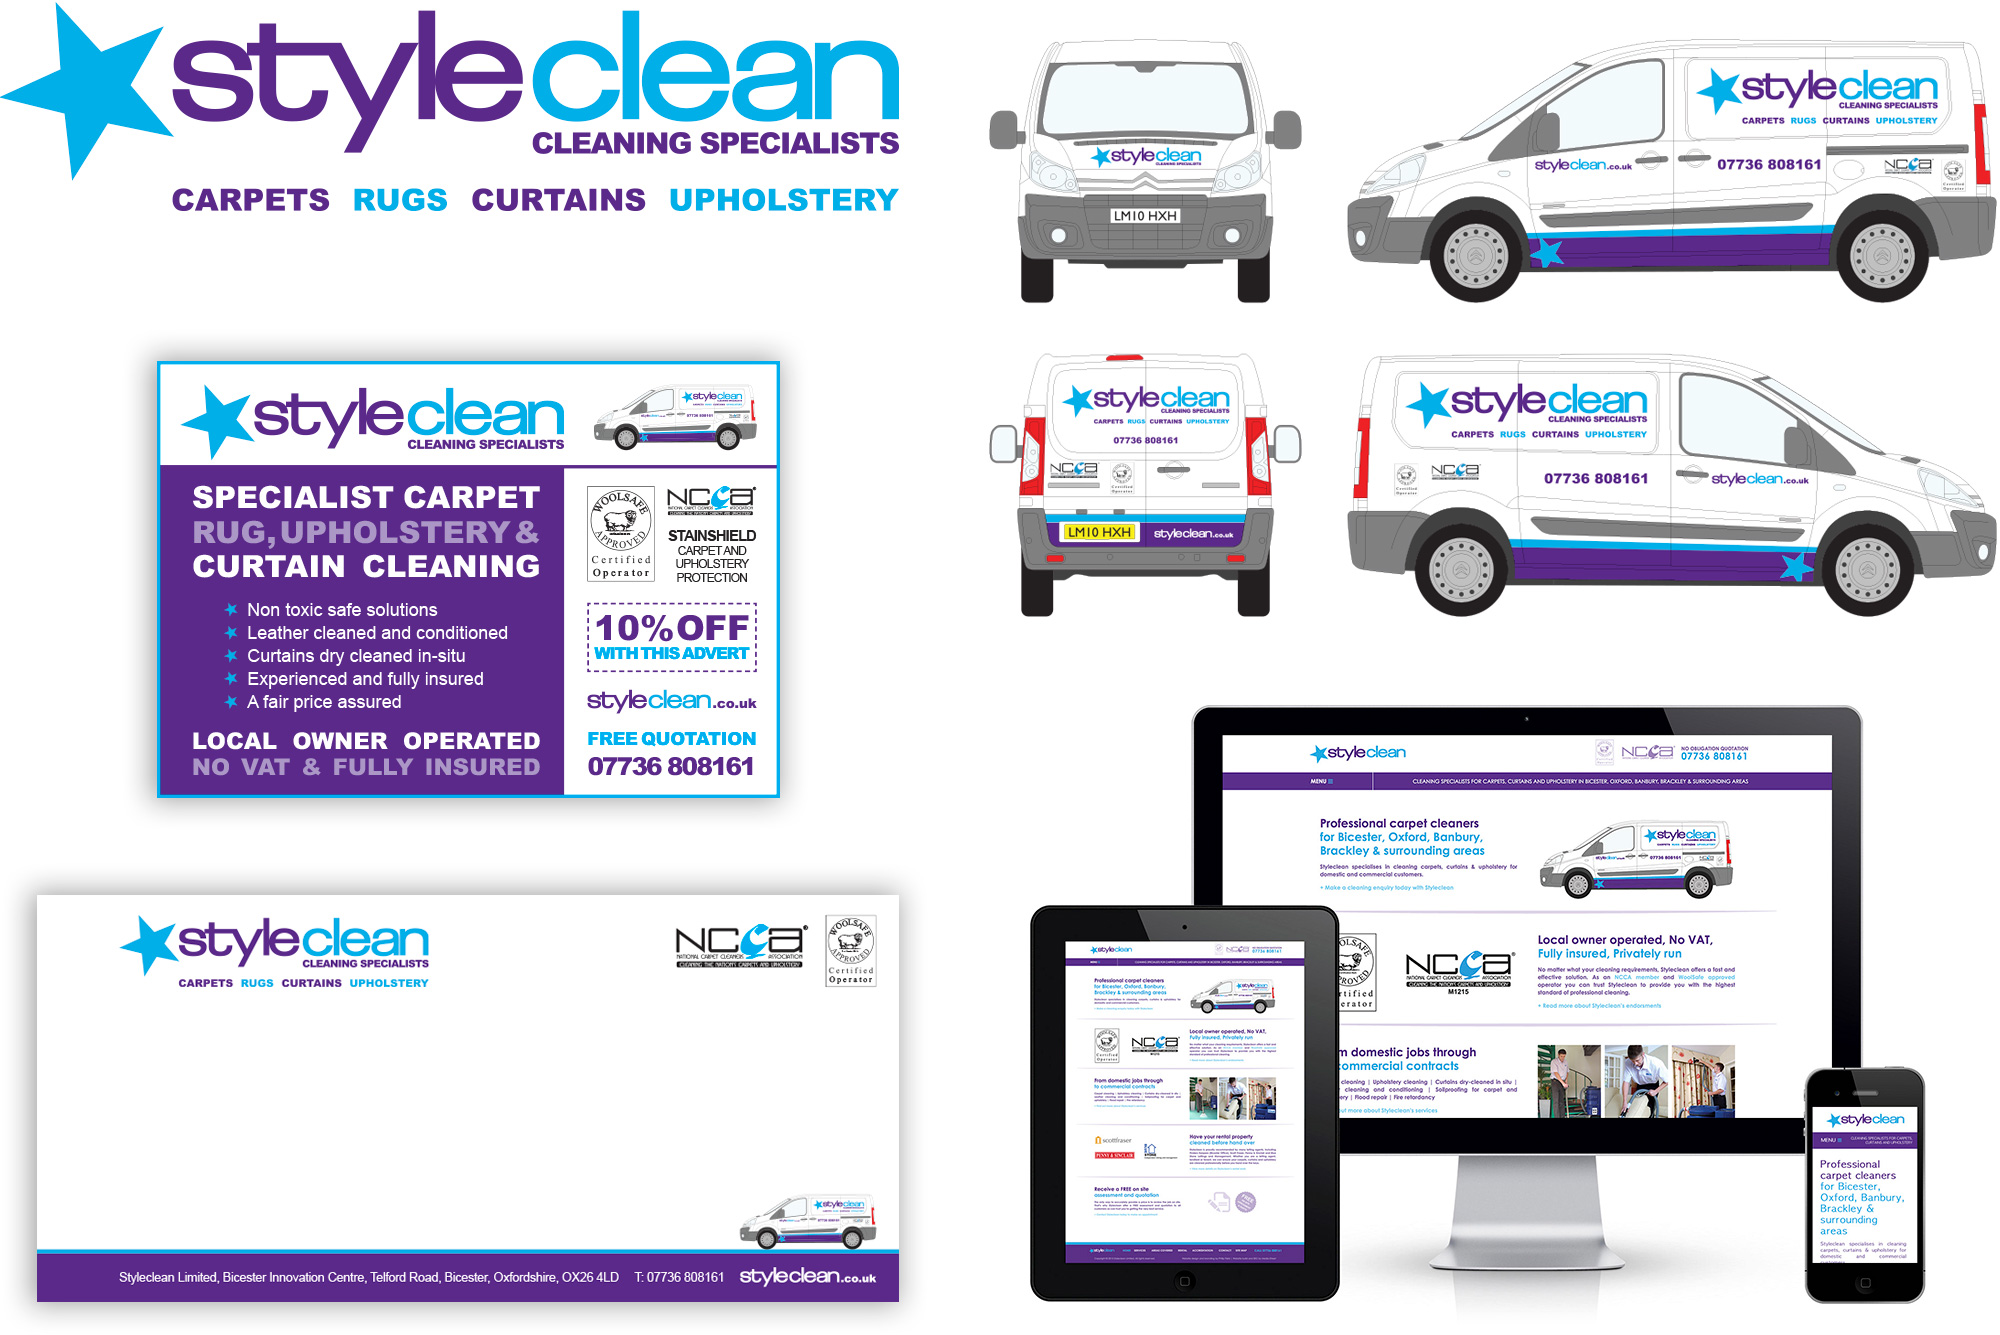 Branding example with Styleclean carpet and upholstery cleaning business